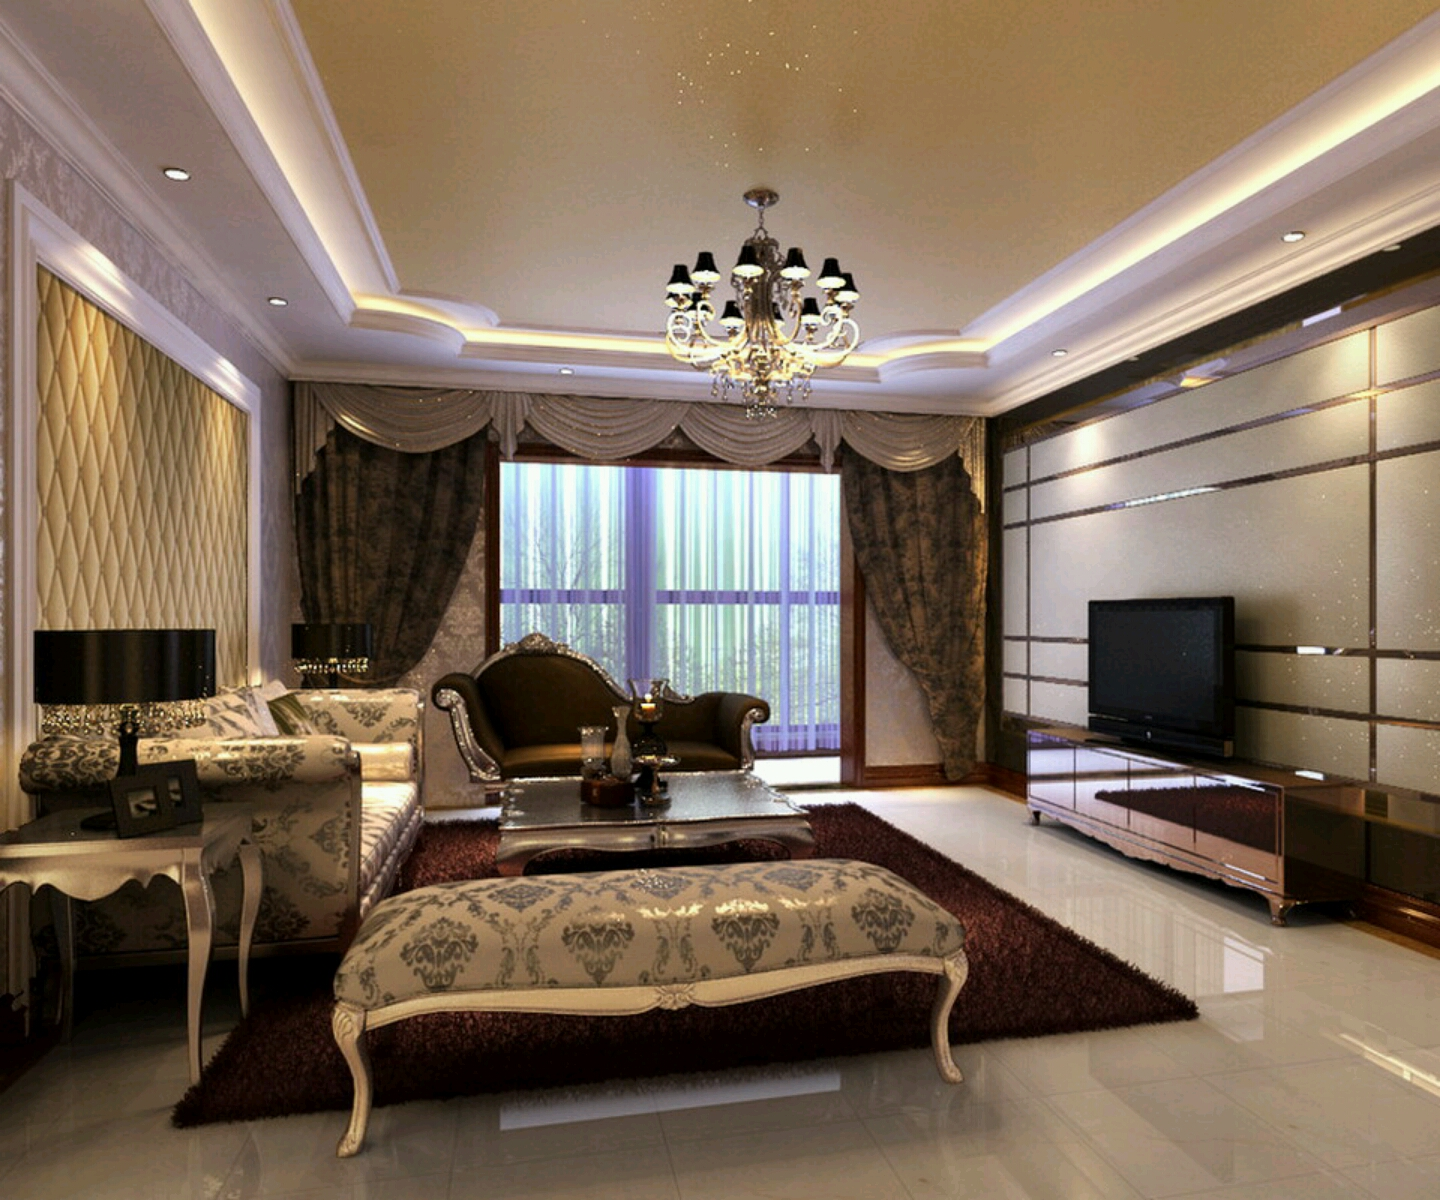 New home designs latest luxury homes interior decoration for Interior design living room elegant